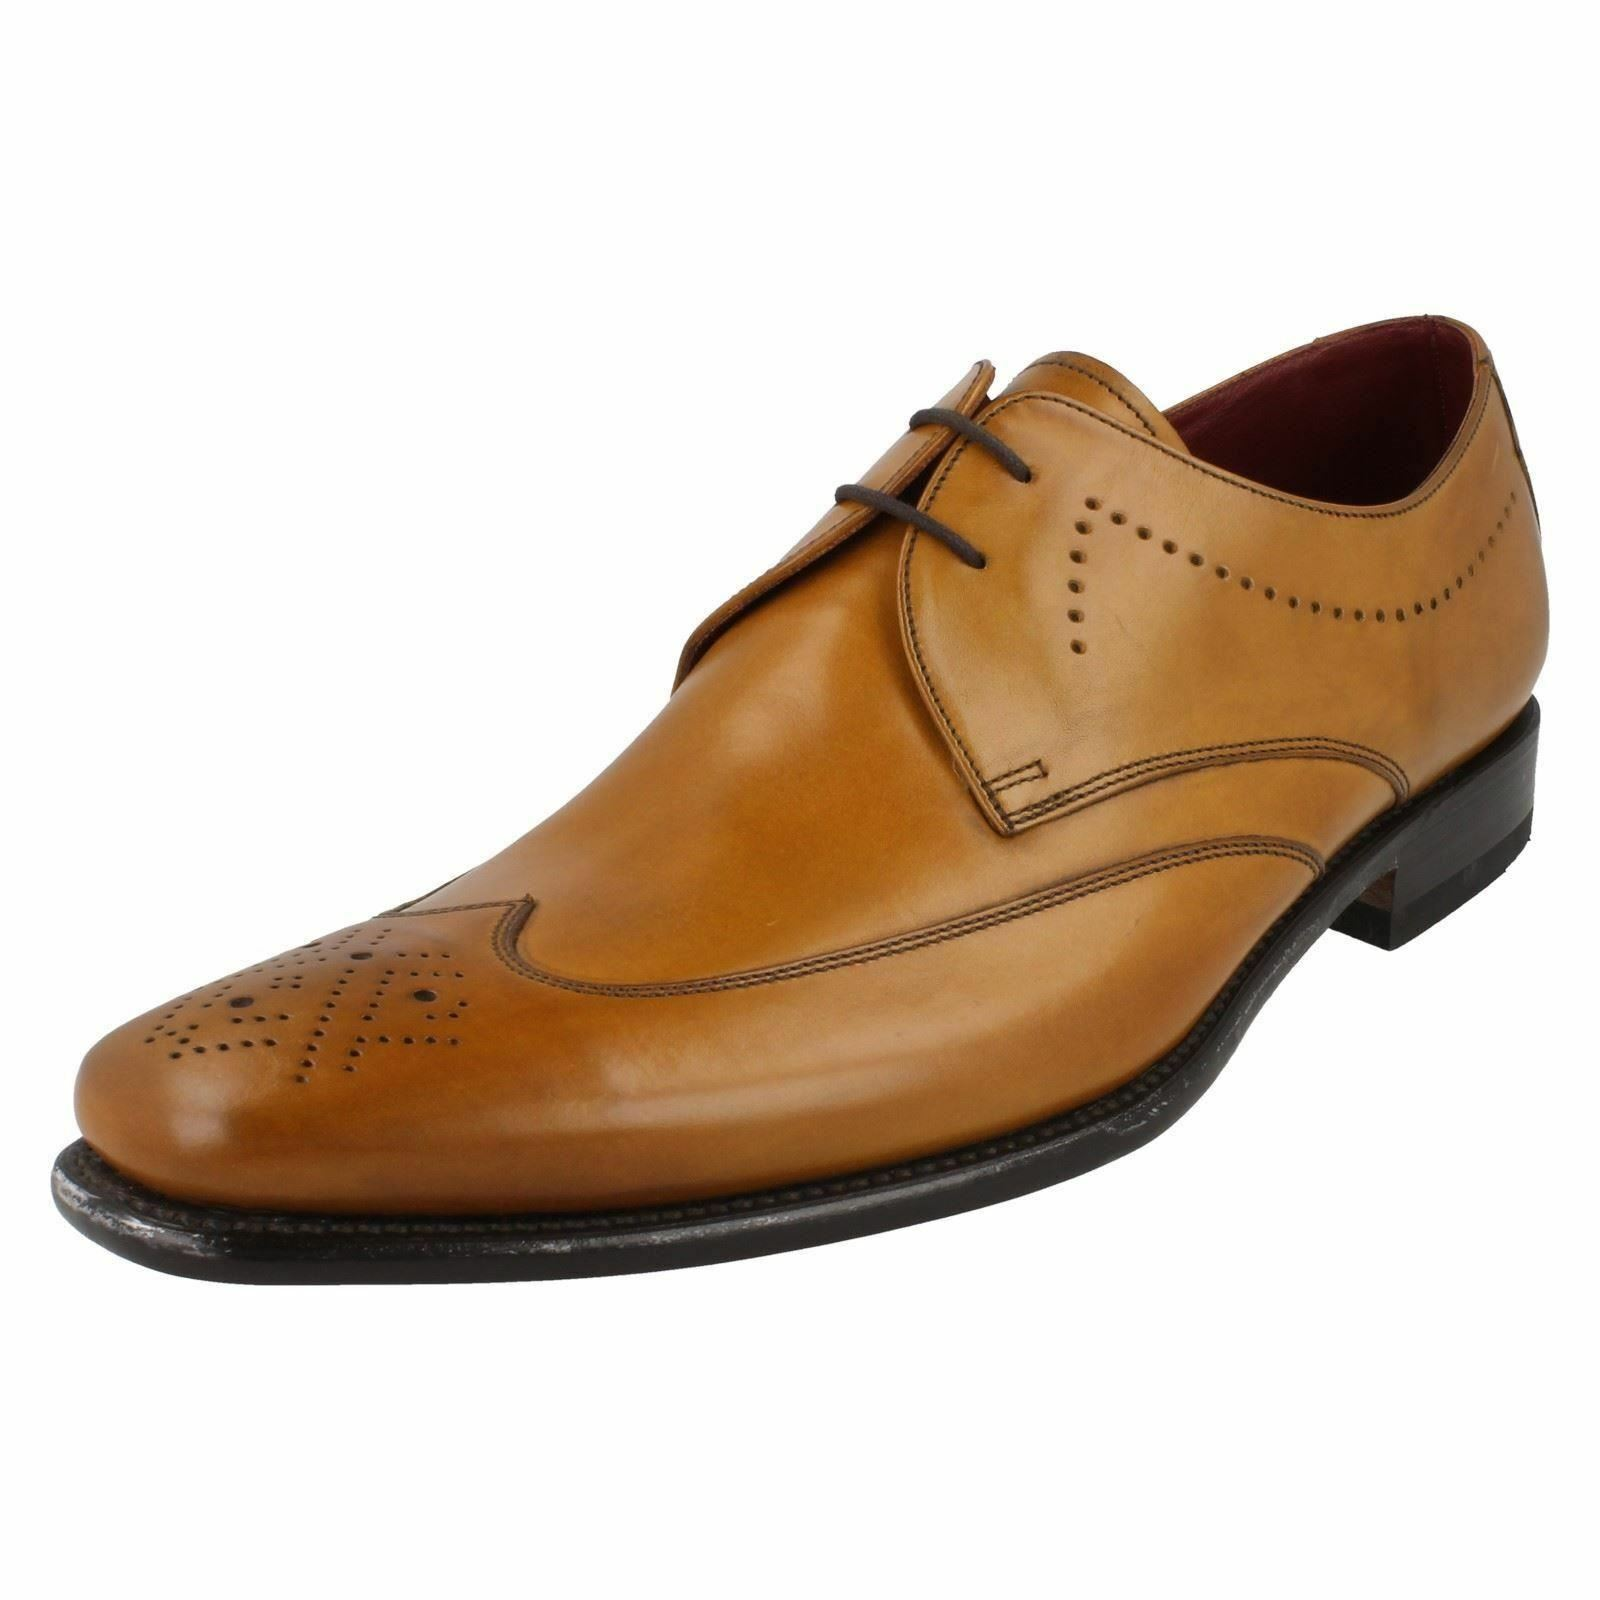 Loake Stitch Tan Gents Formal Smart Schuhes